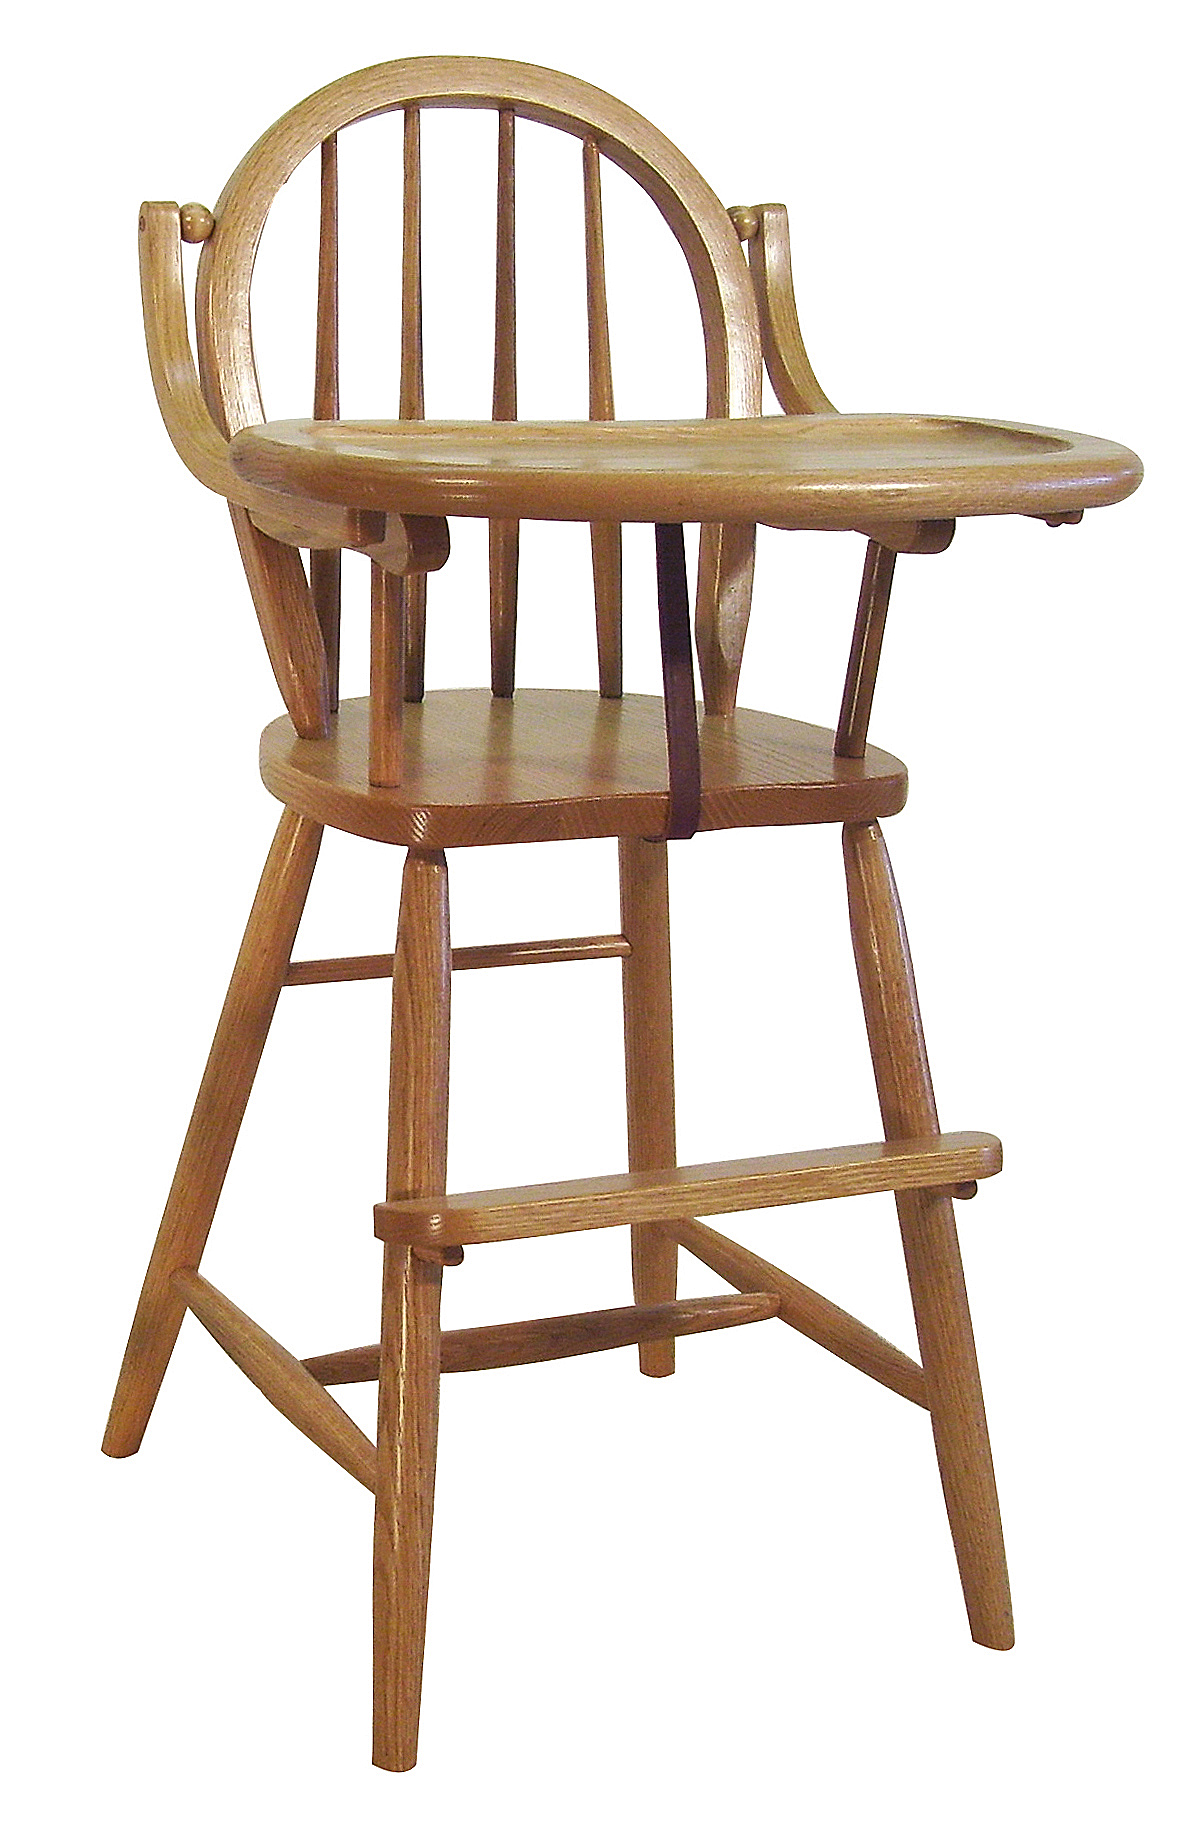 wooden high chairs for babies white jenny lind chair baby furniture wood amish bow back delivery